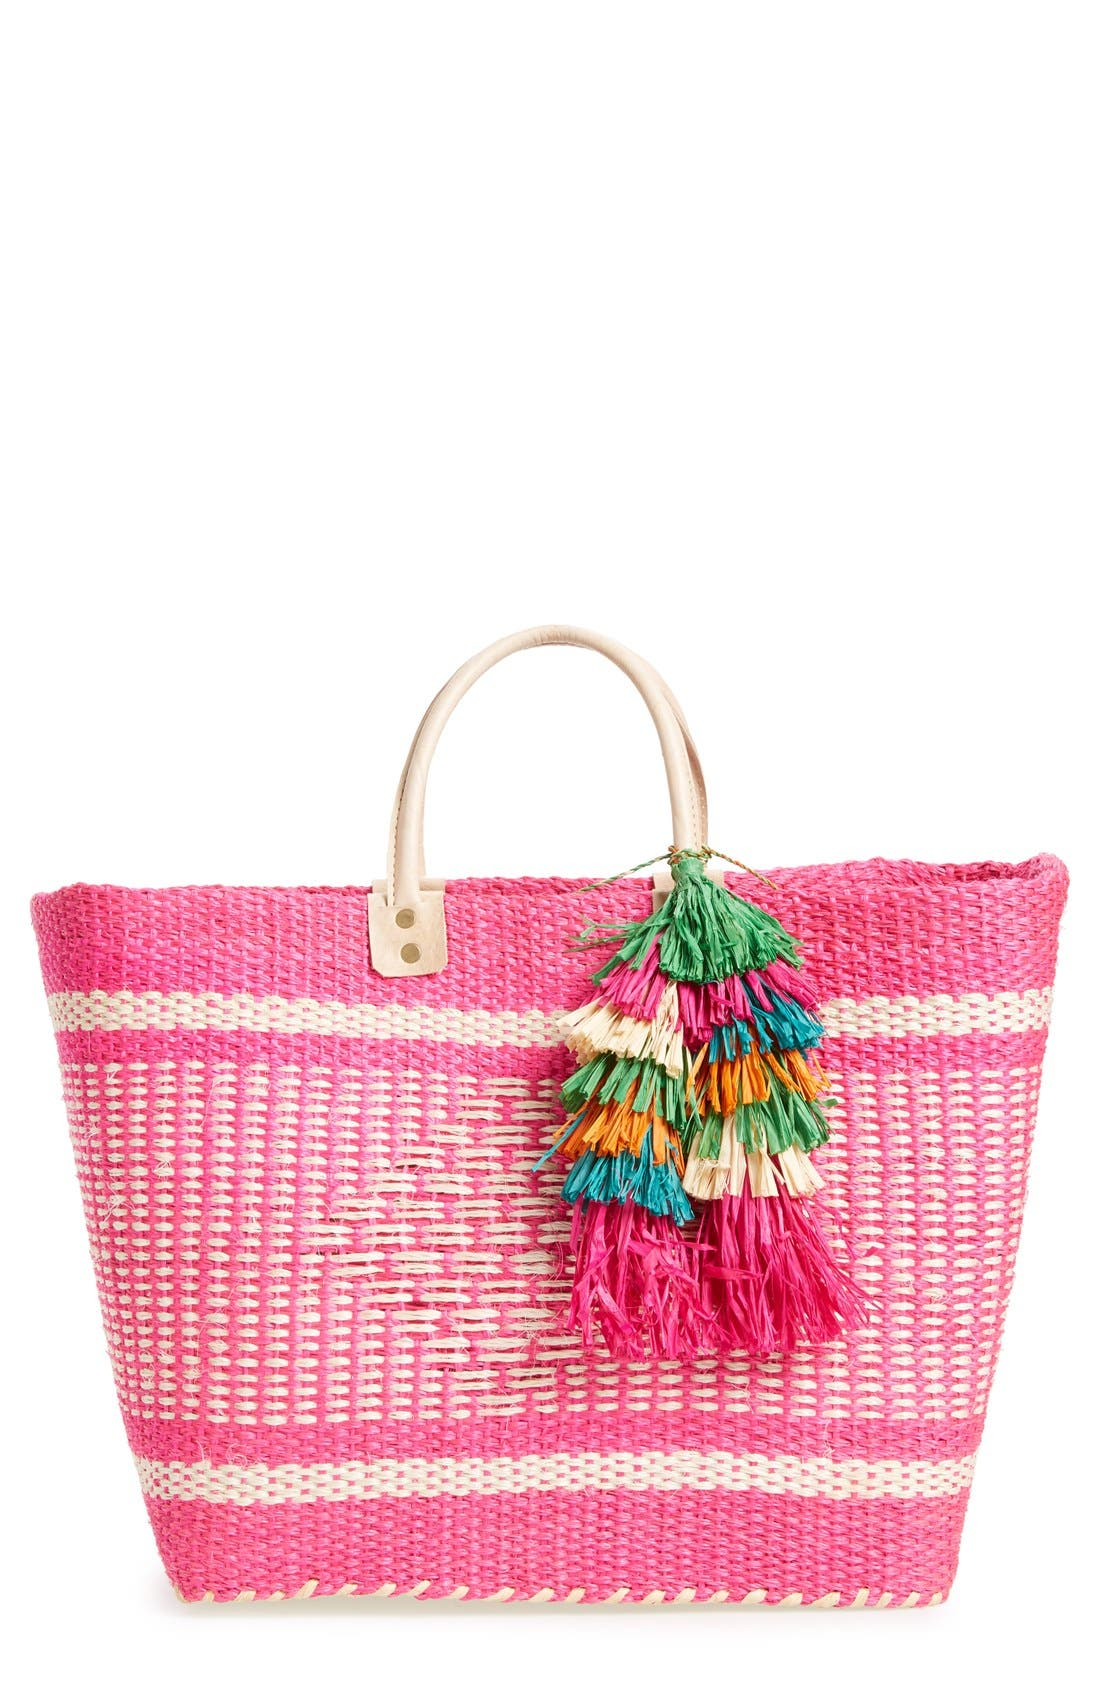 Alternate Image 1 Selected - Mar y Sol 'Ibiza' Woven Tote with Tassel Charms